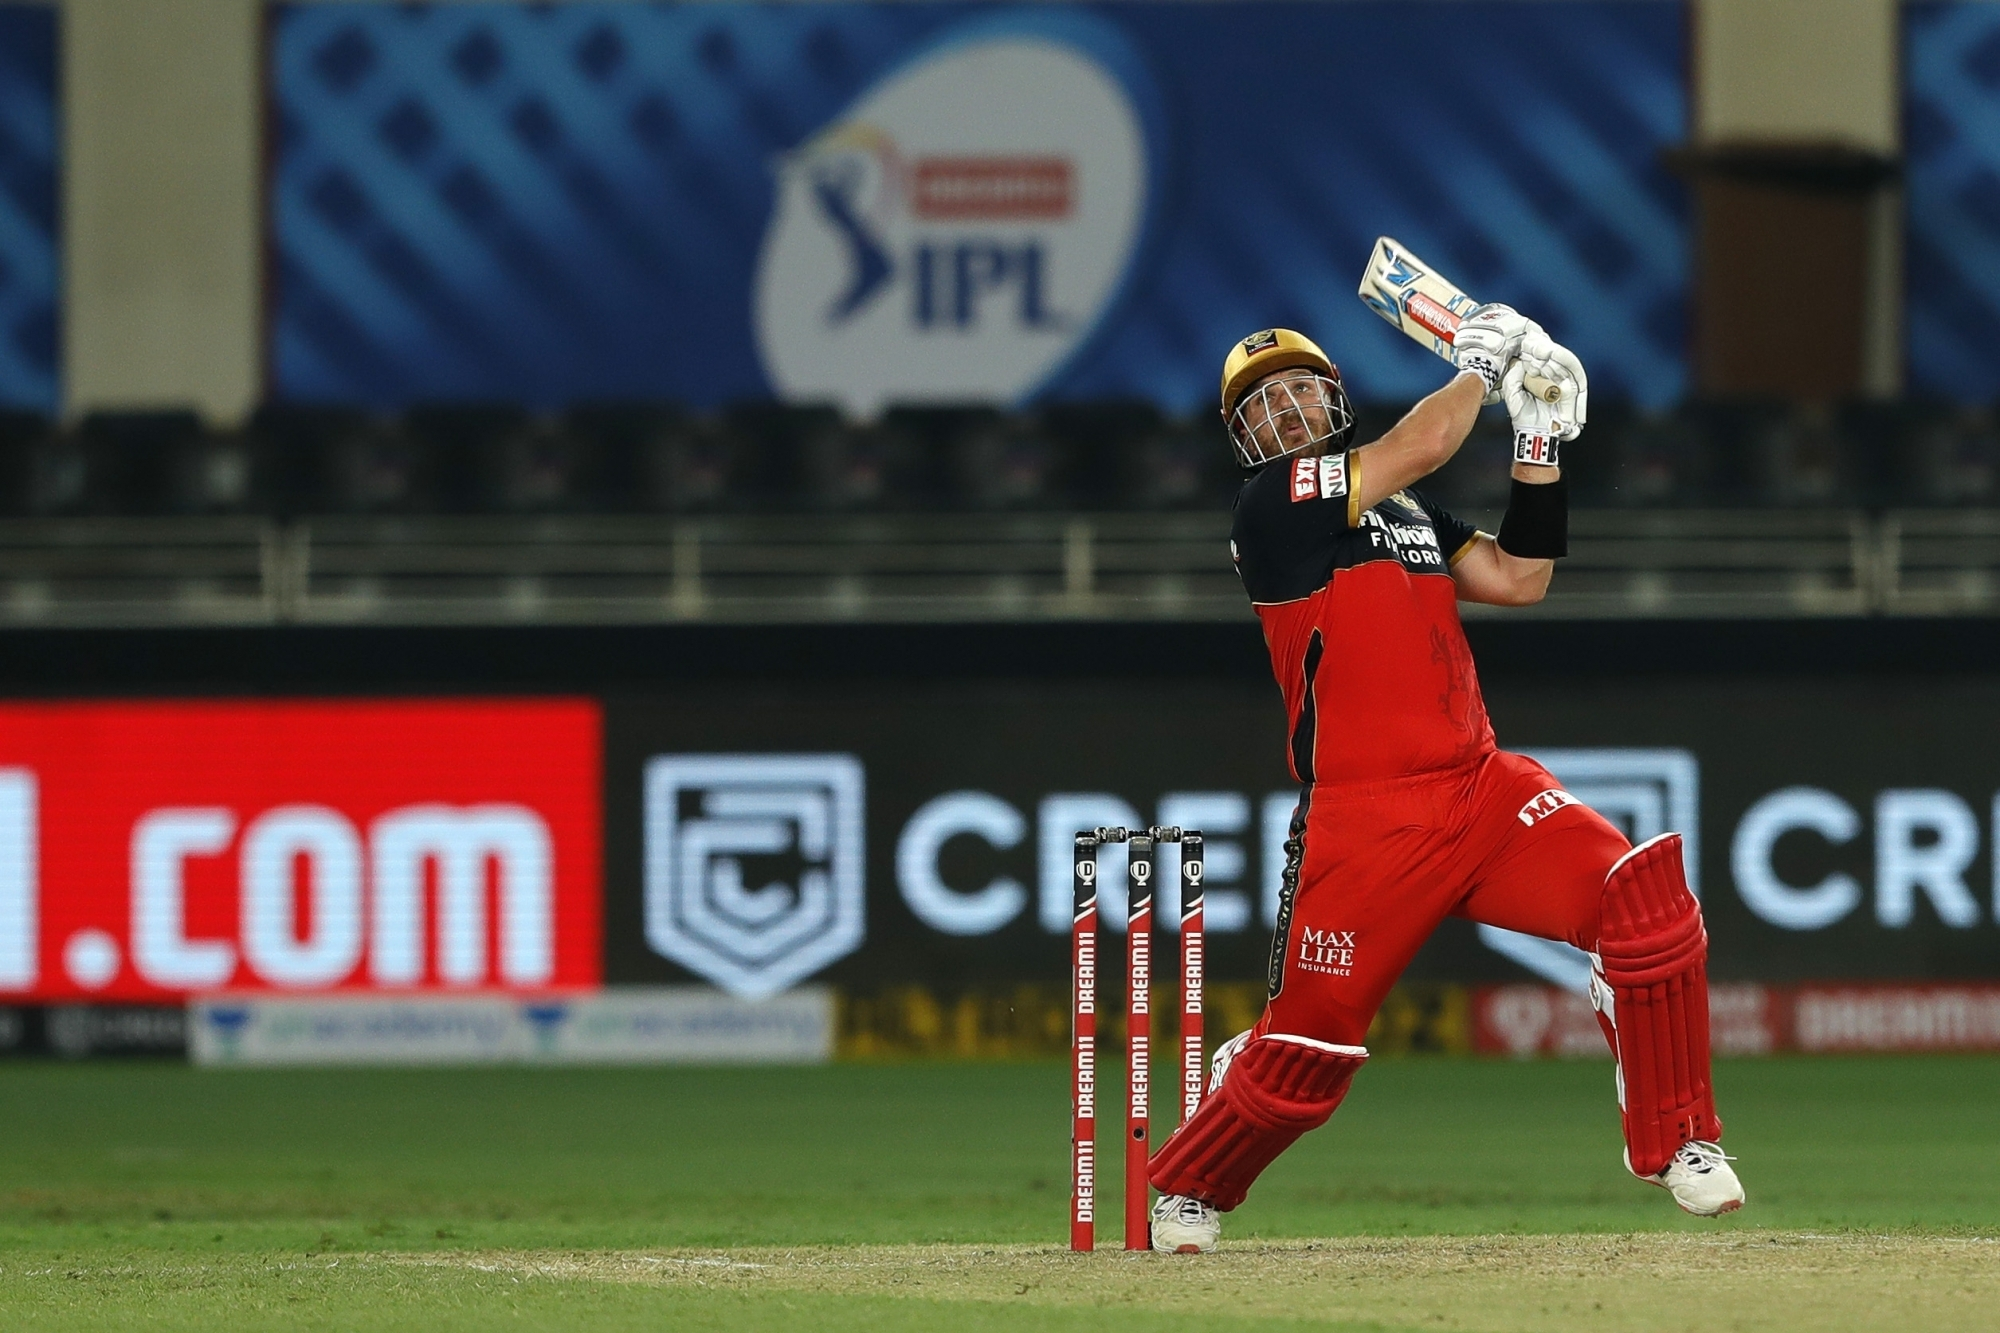 RCB will want Finch to score a bit quicker in power play | IANS